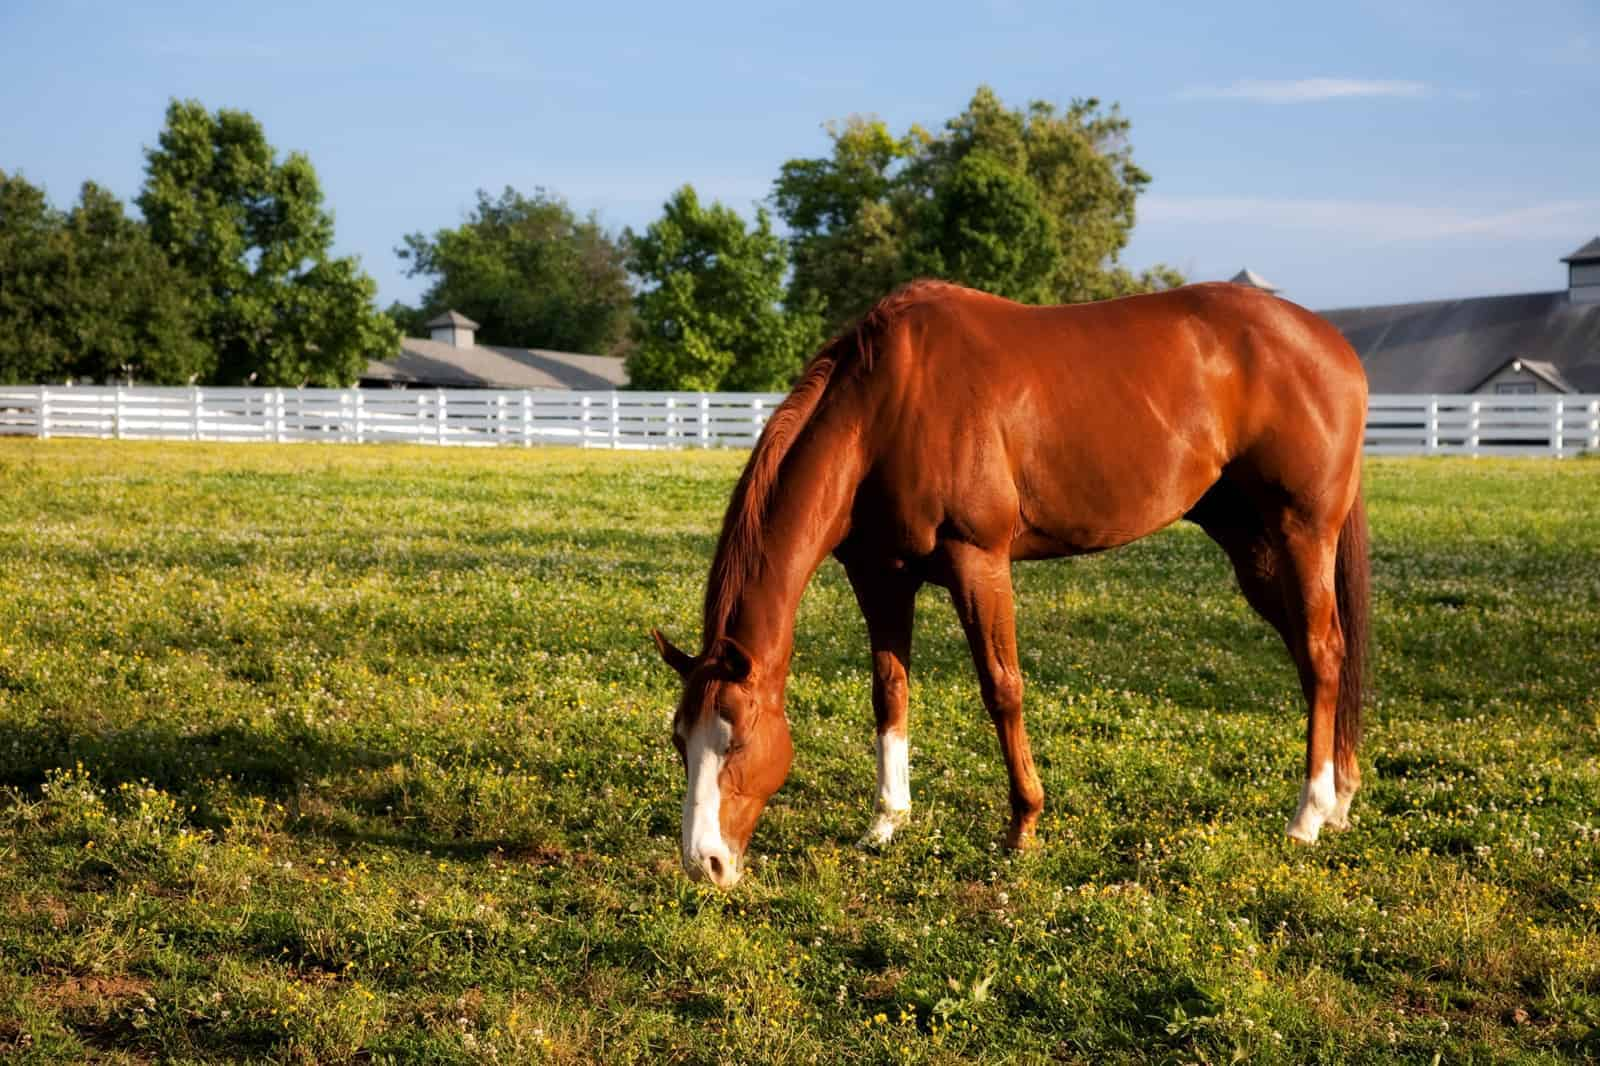 Equine Microbiome Update: Study Reviews Research